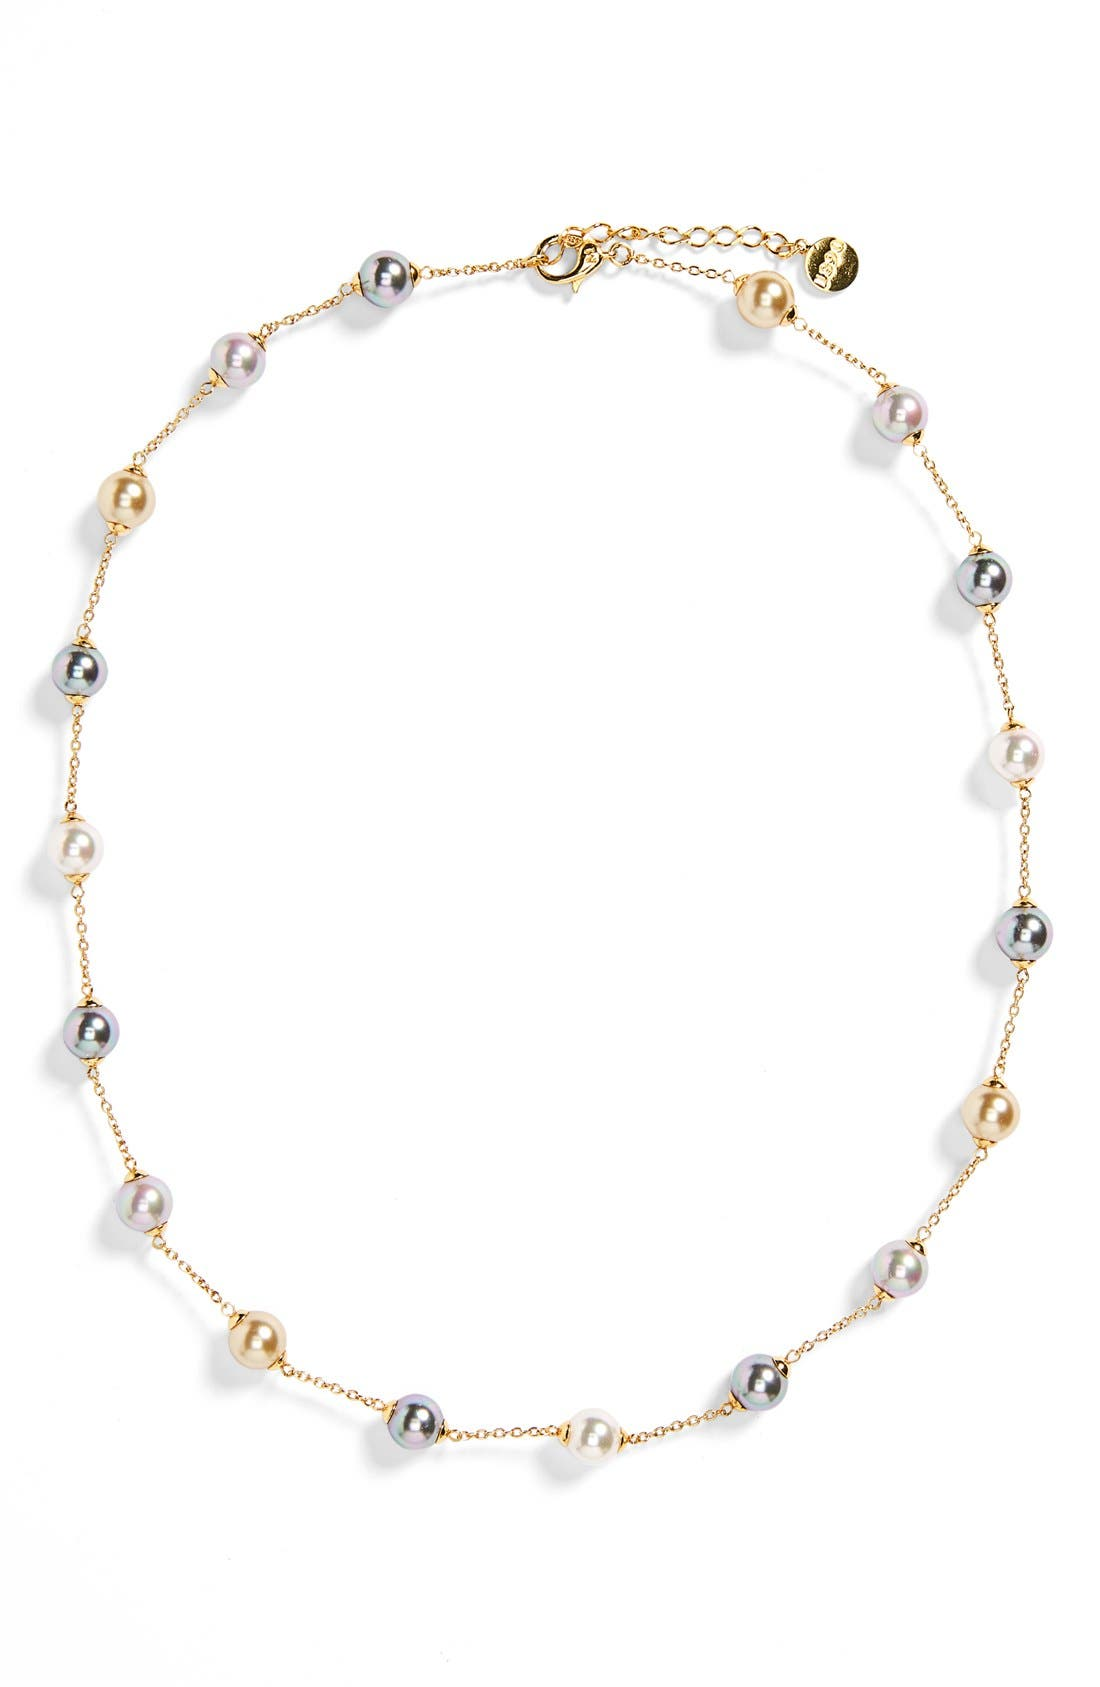 8mm Pearl Station Necklace,                             Main thumbnail 1, color,                             GOLD/ CHAMPAGNE